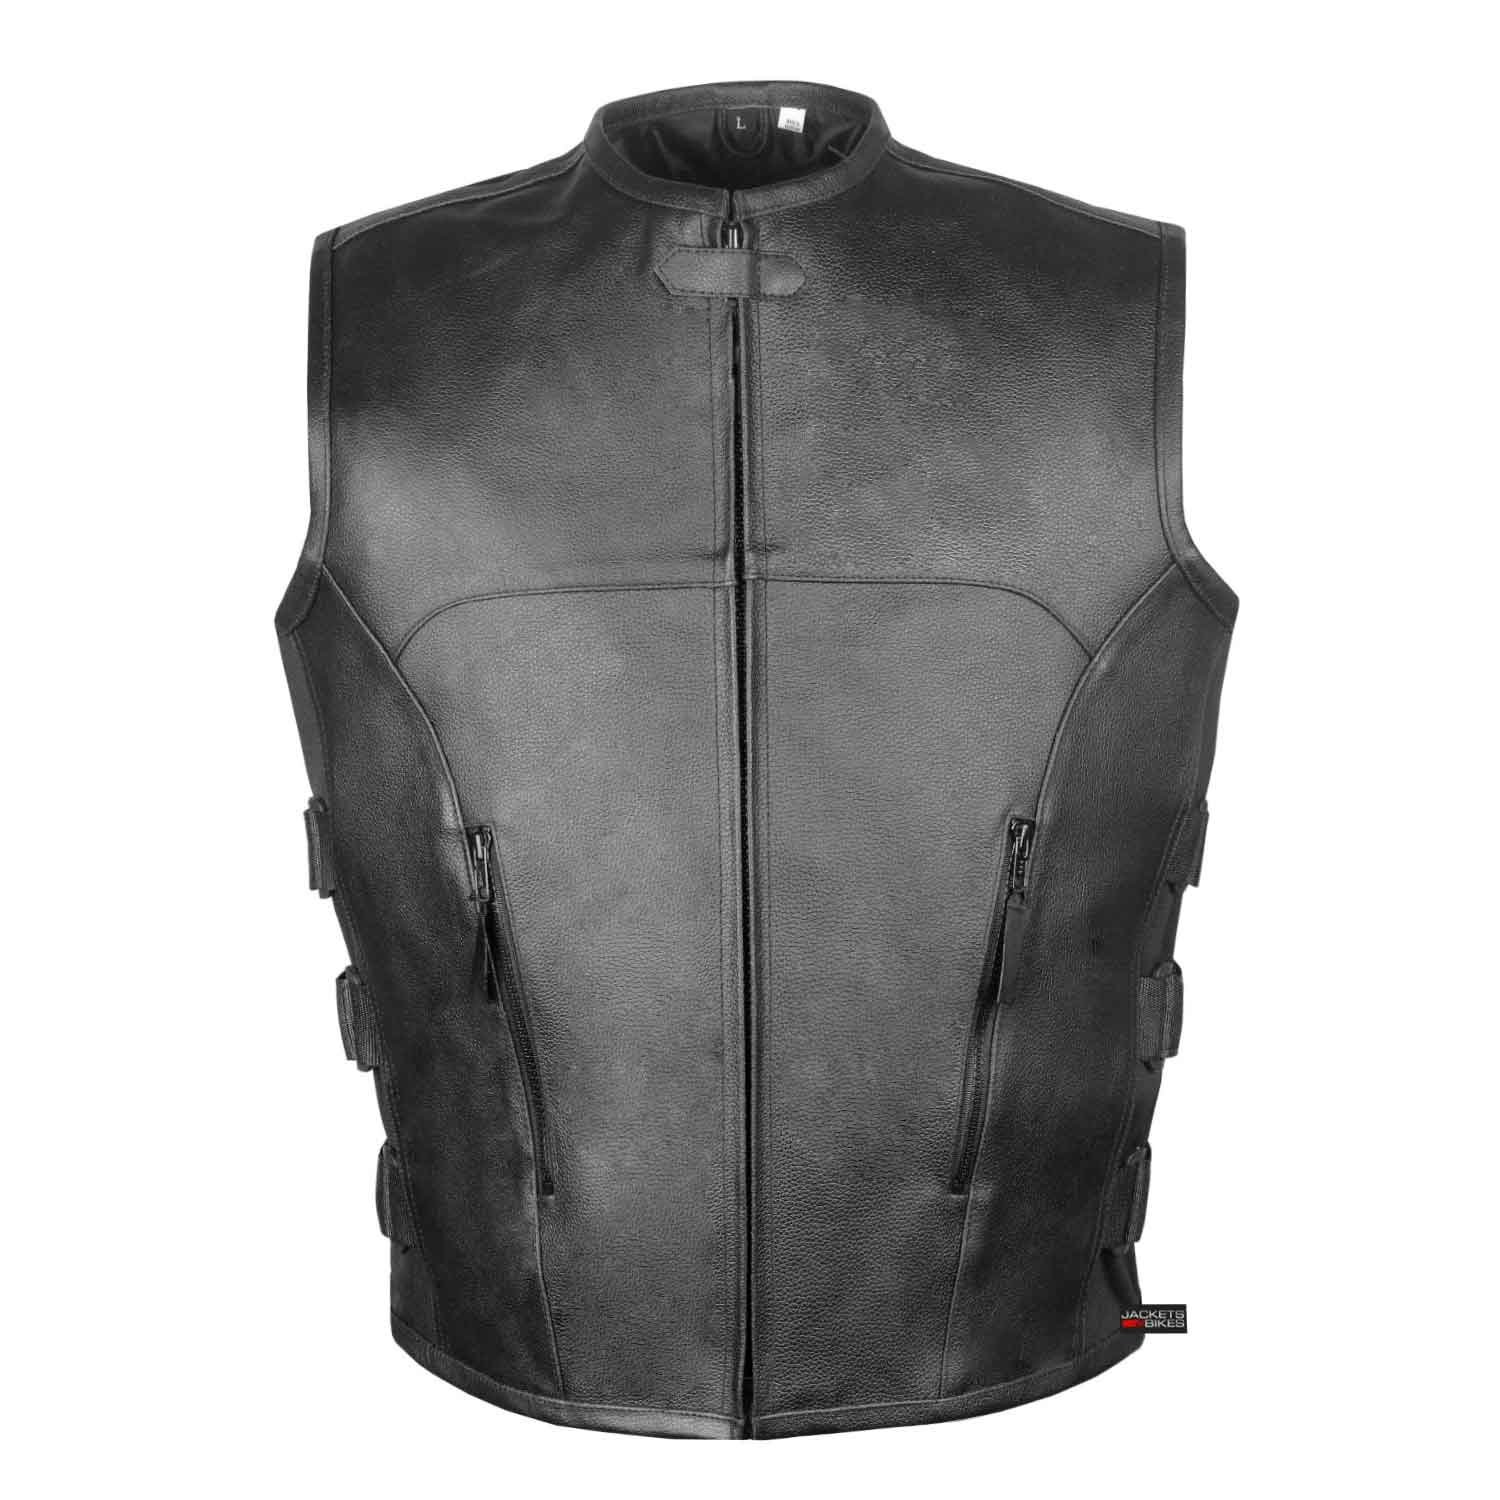 Men's Biker Swat Style Armor Motorcycle Leather Vest Conceal Carry Pockets XXL by Jackets 4 Bikes (Image #2)